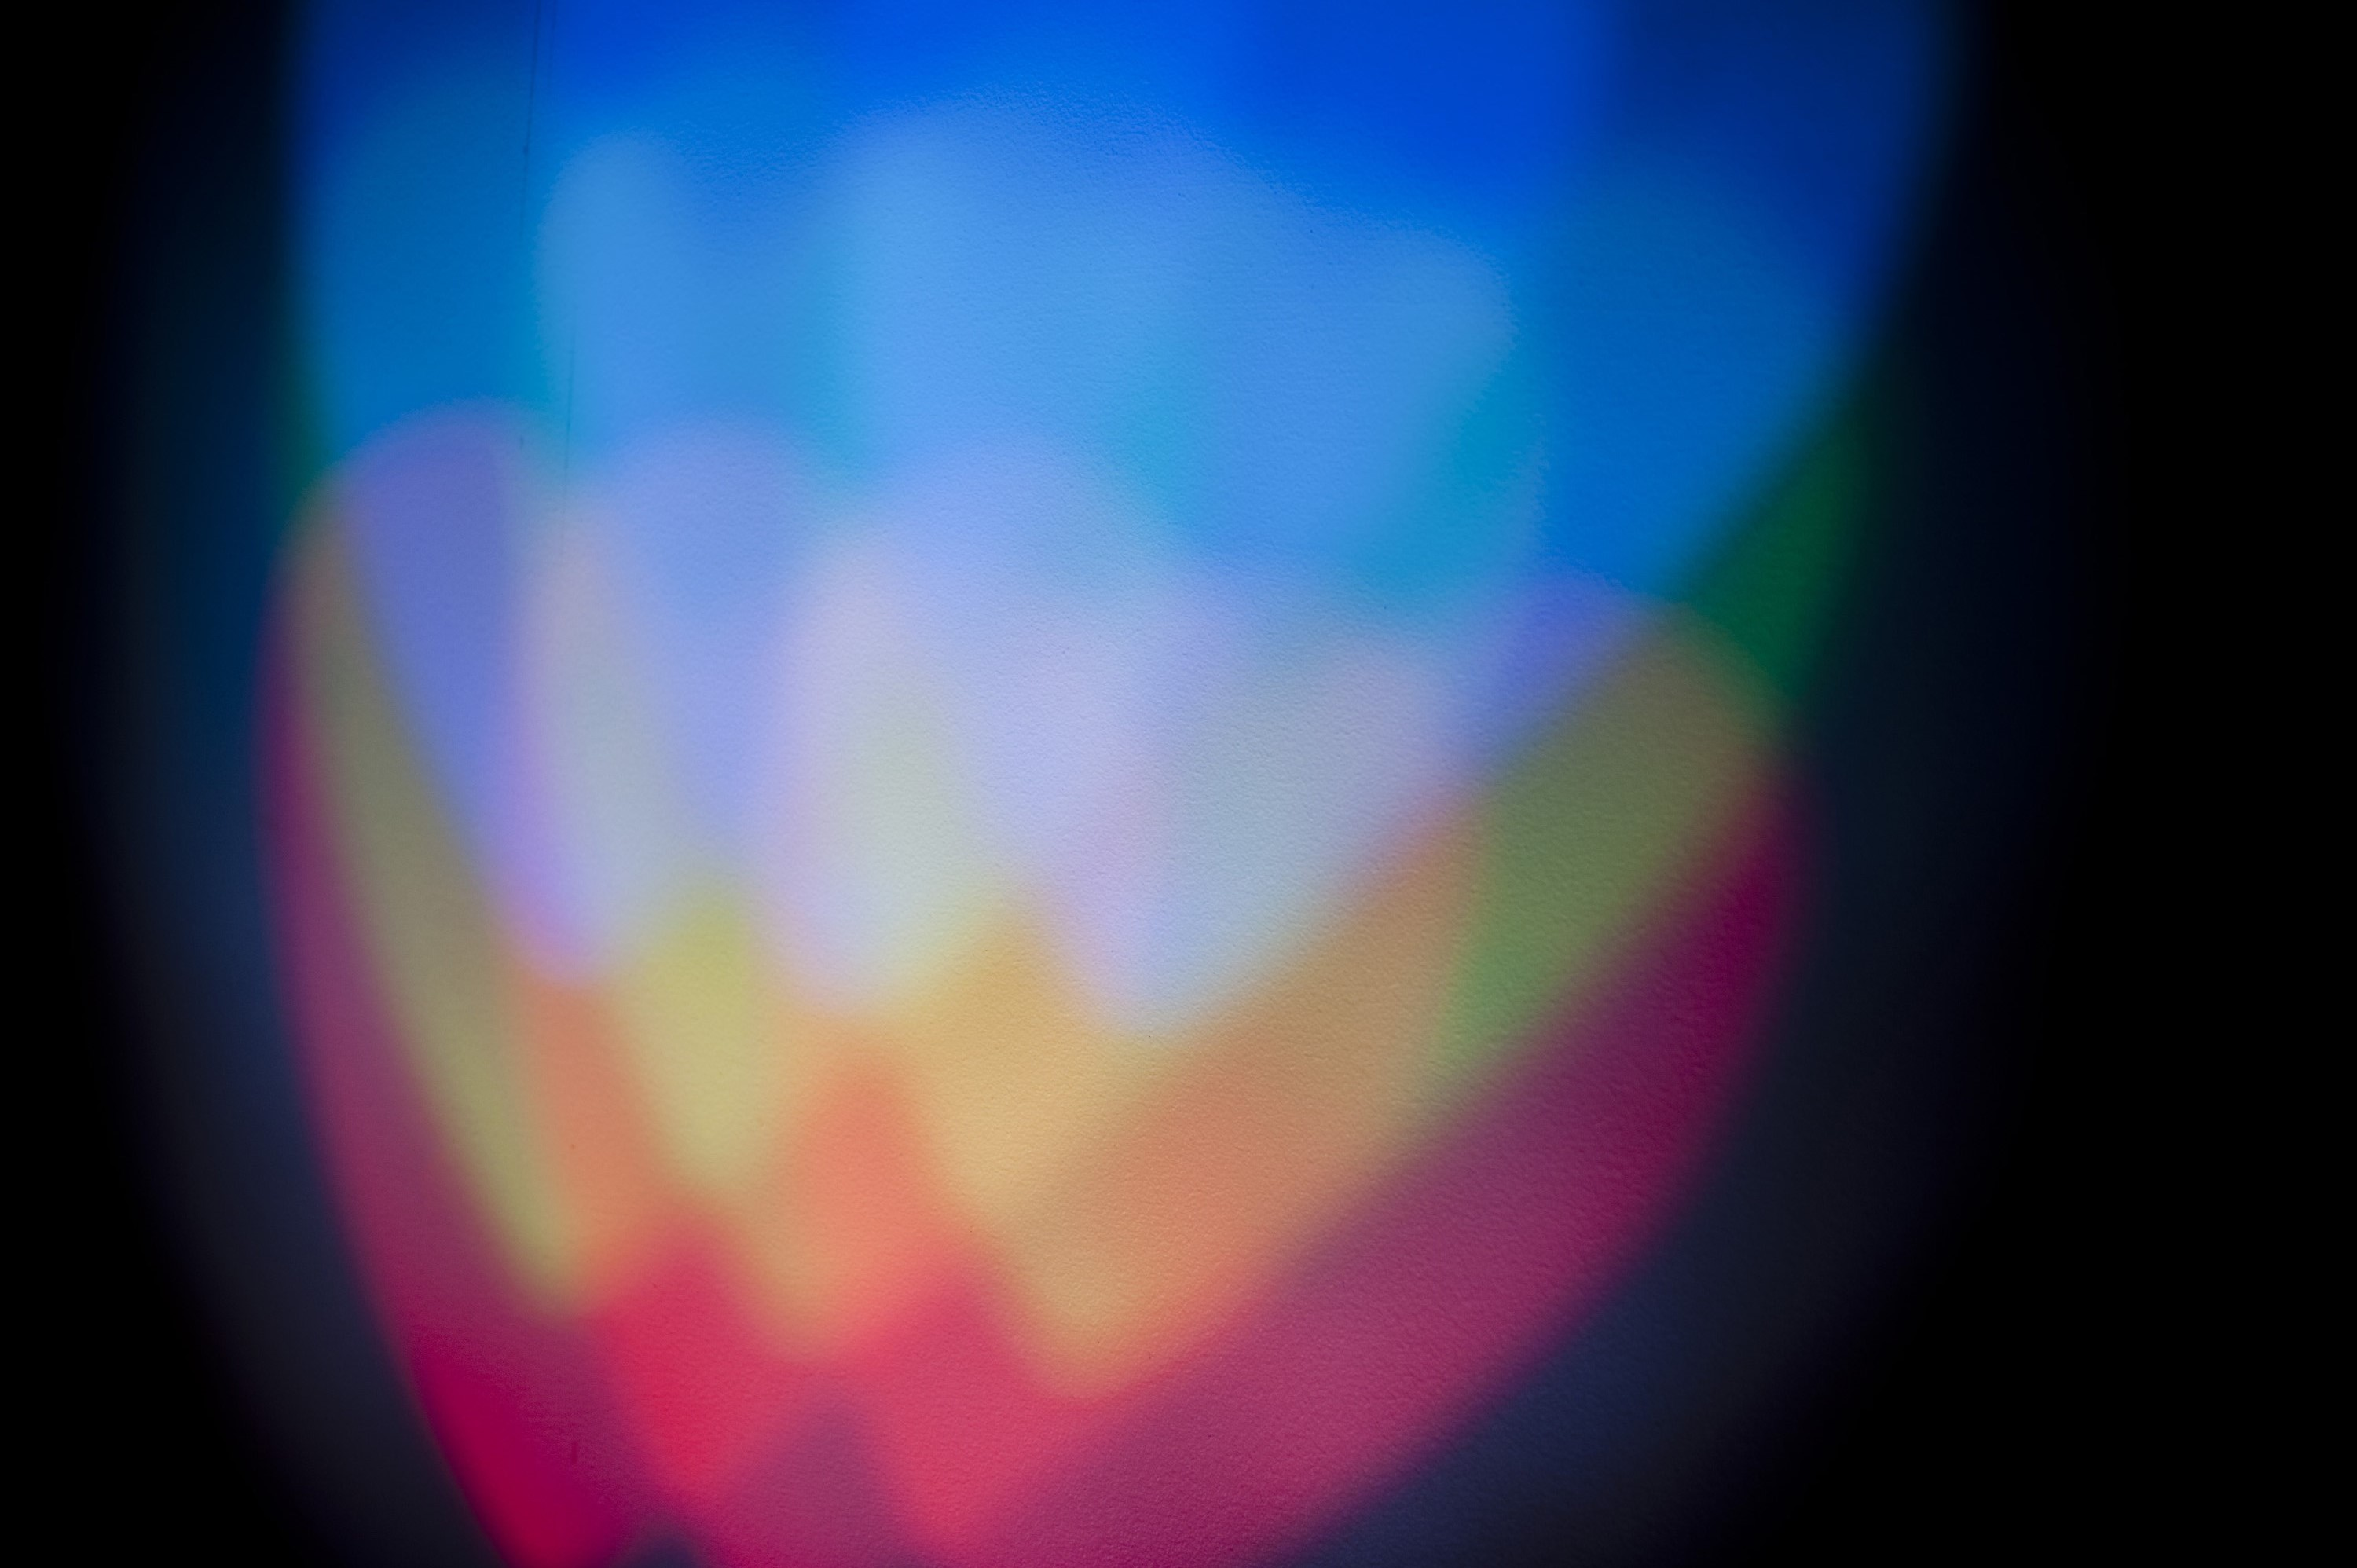 colorful overlapping light hearts with a grain texture